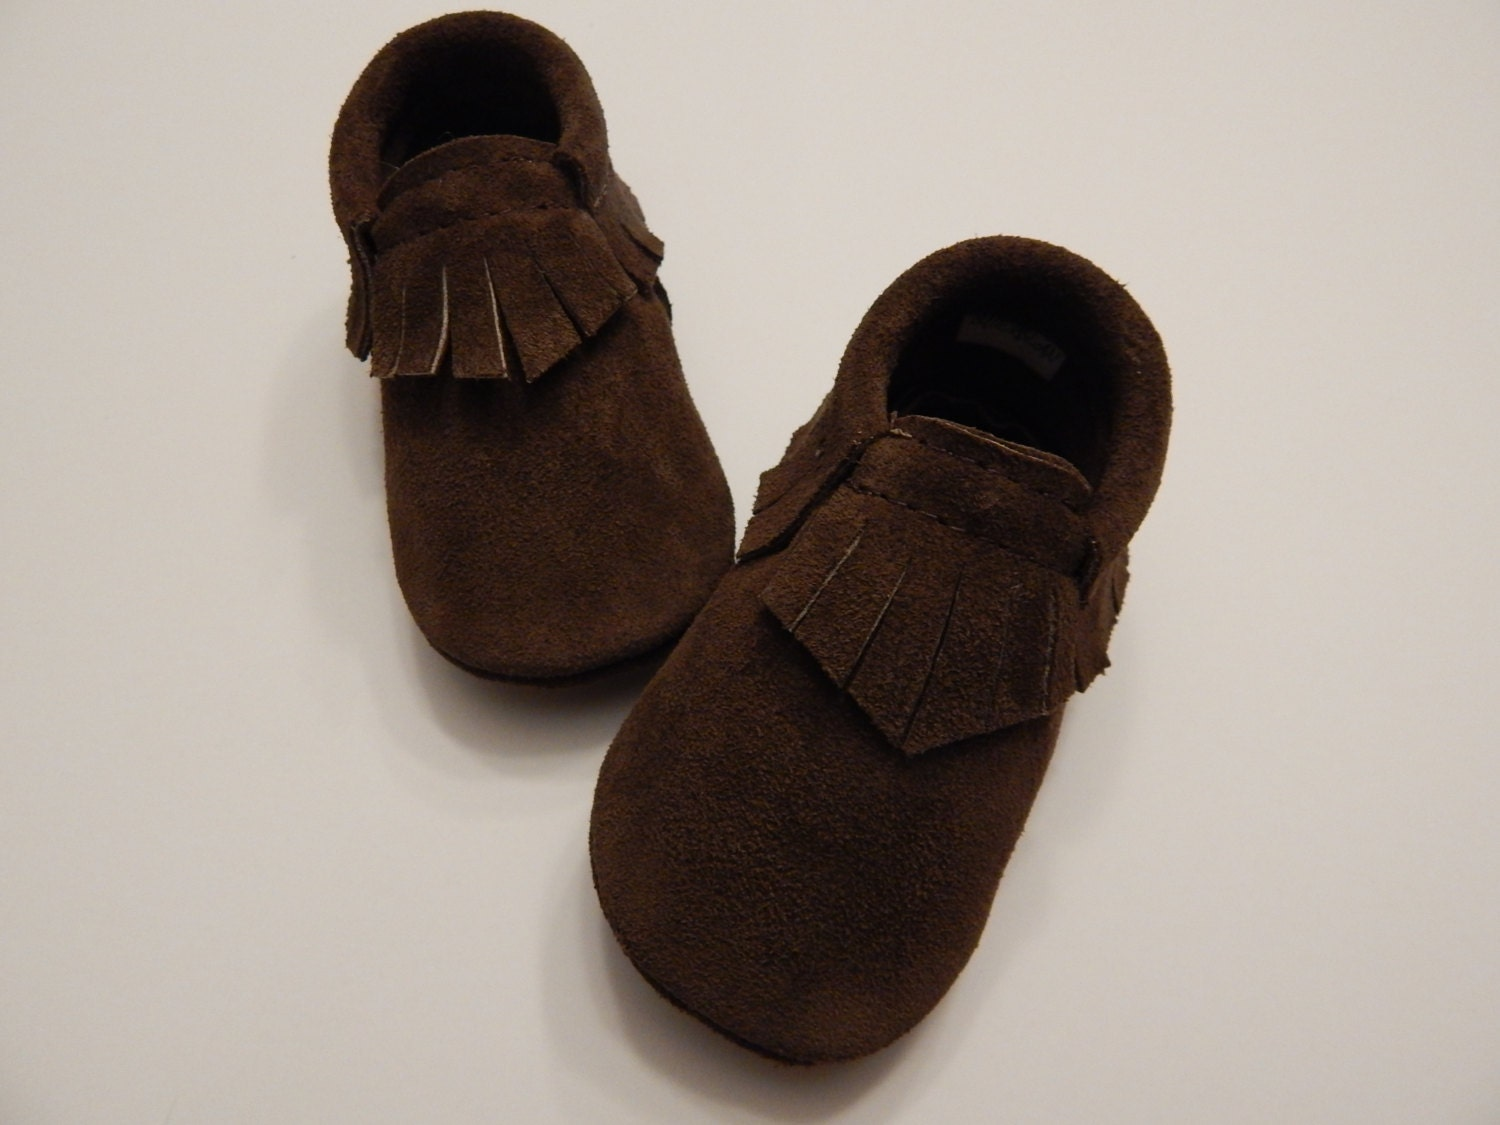 We hand-picked this because: These adorable soft sole leather baby shoes are made of top grade, genuine leather with non-slip gommino soles. Easy to take on and off, they are comfy and colorful too!